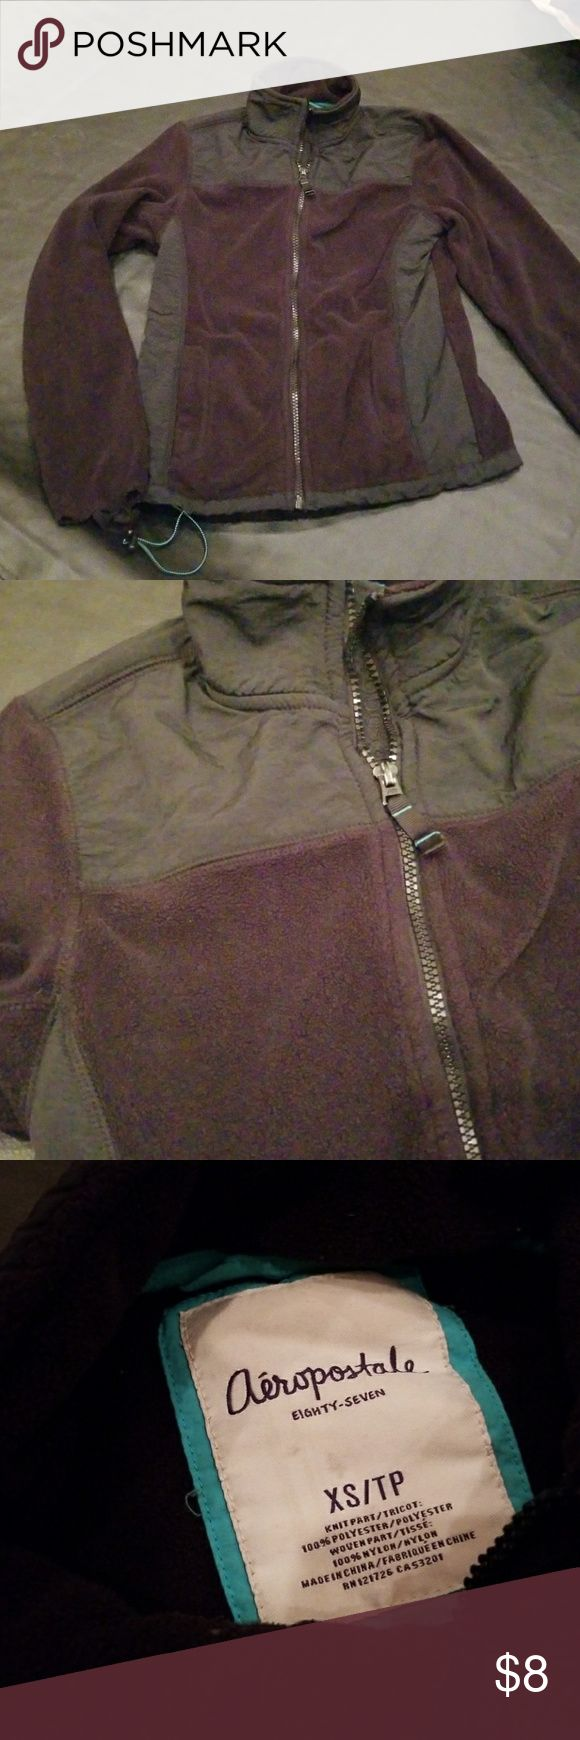 """🔥5 for $15🔥AERO FLEECE Zip Up Jacket God condition other than sleeve piping coming off.cpuld be removed fully. 1 of 2 bungee underneath is broken.  Doesn't impact wear. 🔥5 for $15🔥(ANY 5 listings marked 5 for $15) 😉EARN EXCLUSIVE """"REWARDS DOLLARS"""" WITH EVERY PURCHASE.   💍Also CHECK OUT my $5 for $25 SALE💕    Why SHOP MY Closet? 💋Most NWT or Worn Once 💋Smoke/ Pet Free 💋OVER 550 🌟🌟🌟🌟🌟RATINGS & RISING! 💋TOP 10% Seller  💋TOP RATED 💋 FAST SHIPPER  💋BUNDLES 20% OFF 💋EARN…"""